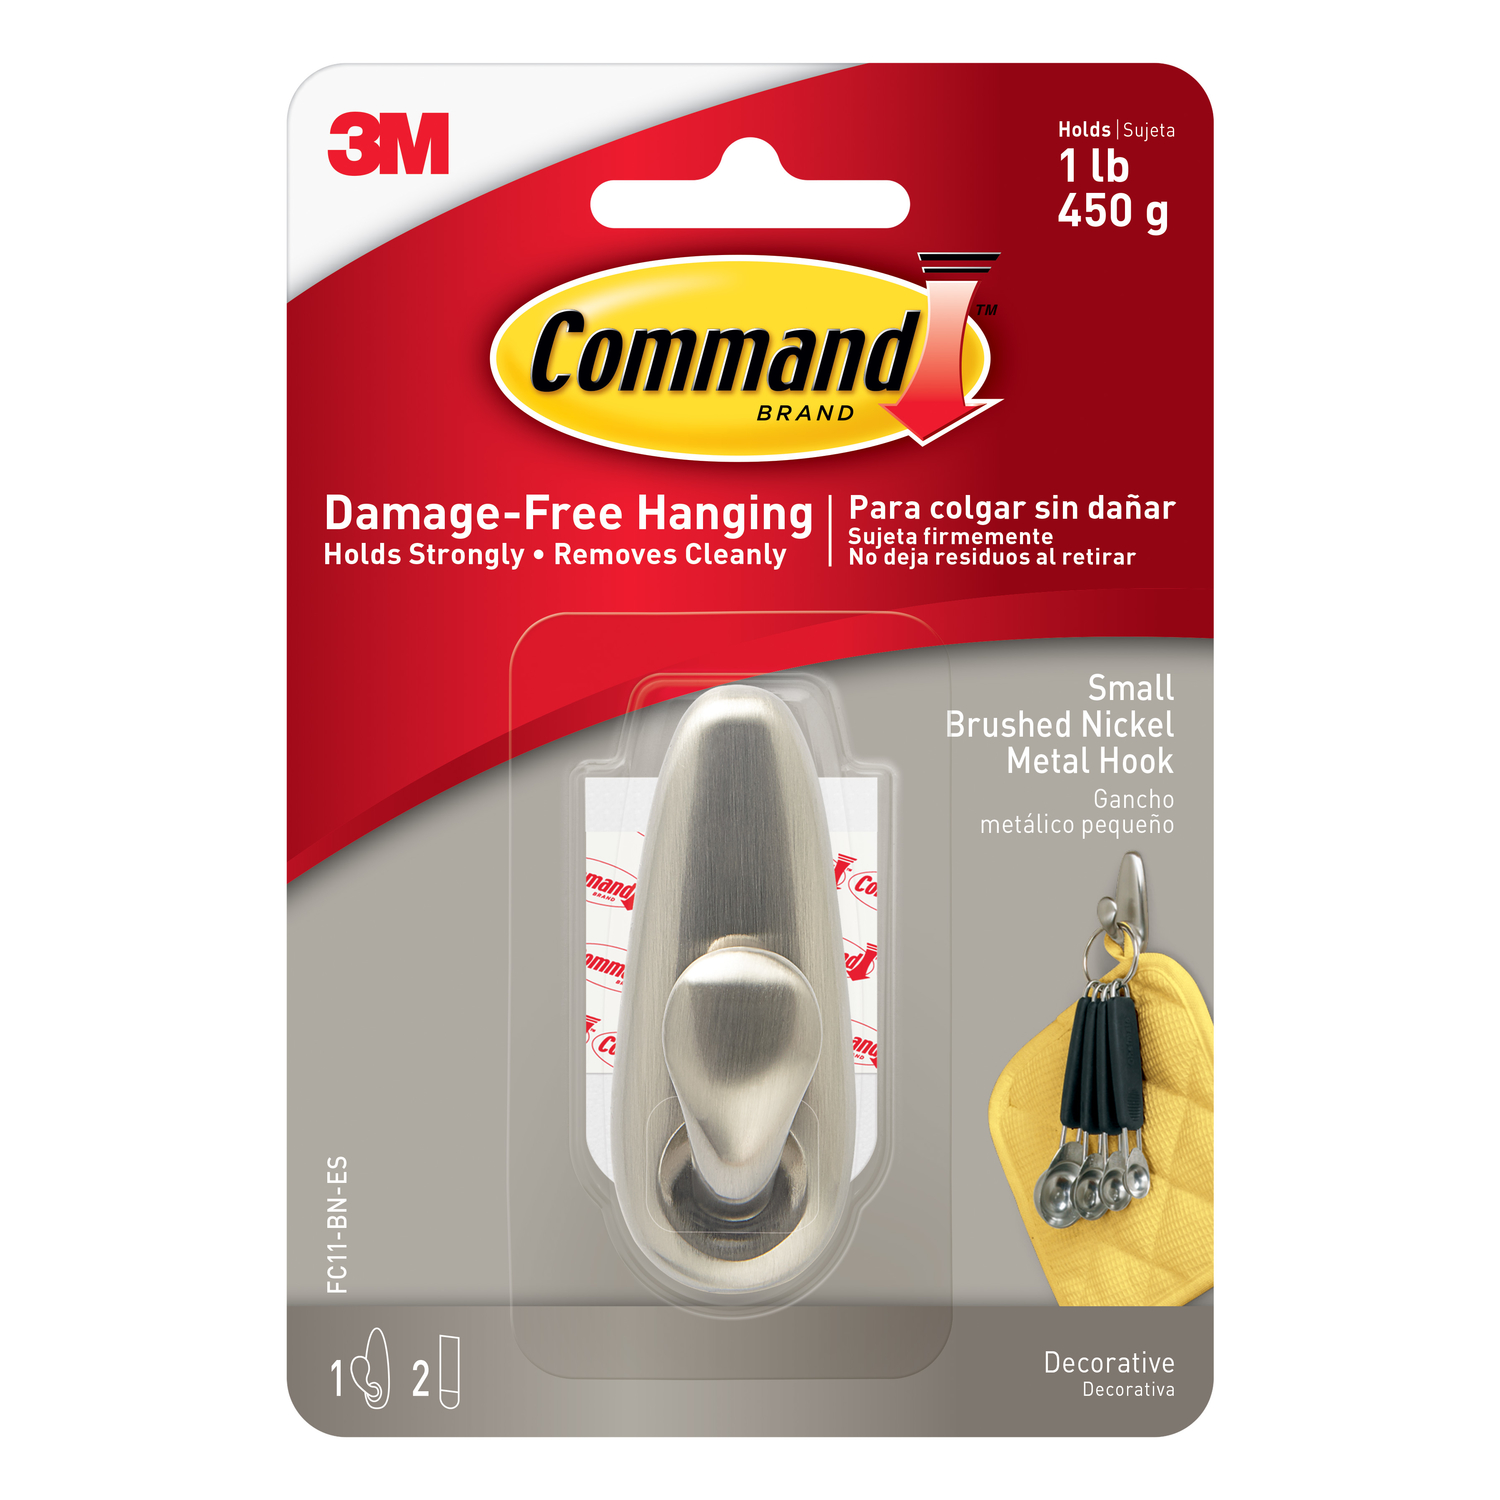 3M  Command  2-5/8 in. L Metal  Small  Forever Classic  Coat/Hat Hook  1 lb. capacity Brushed Nickel